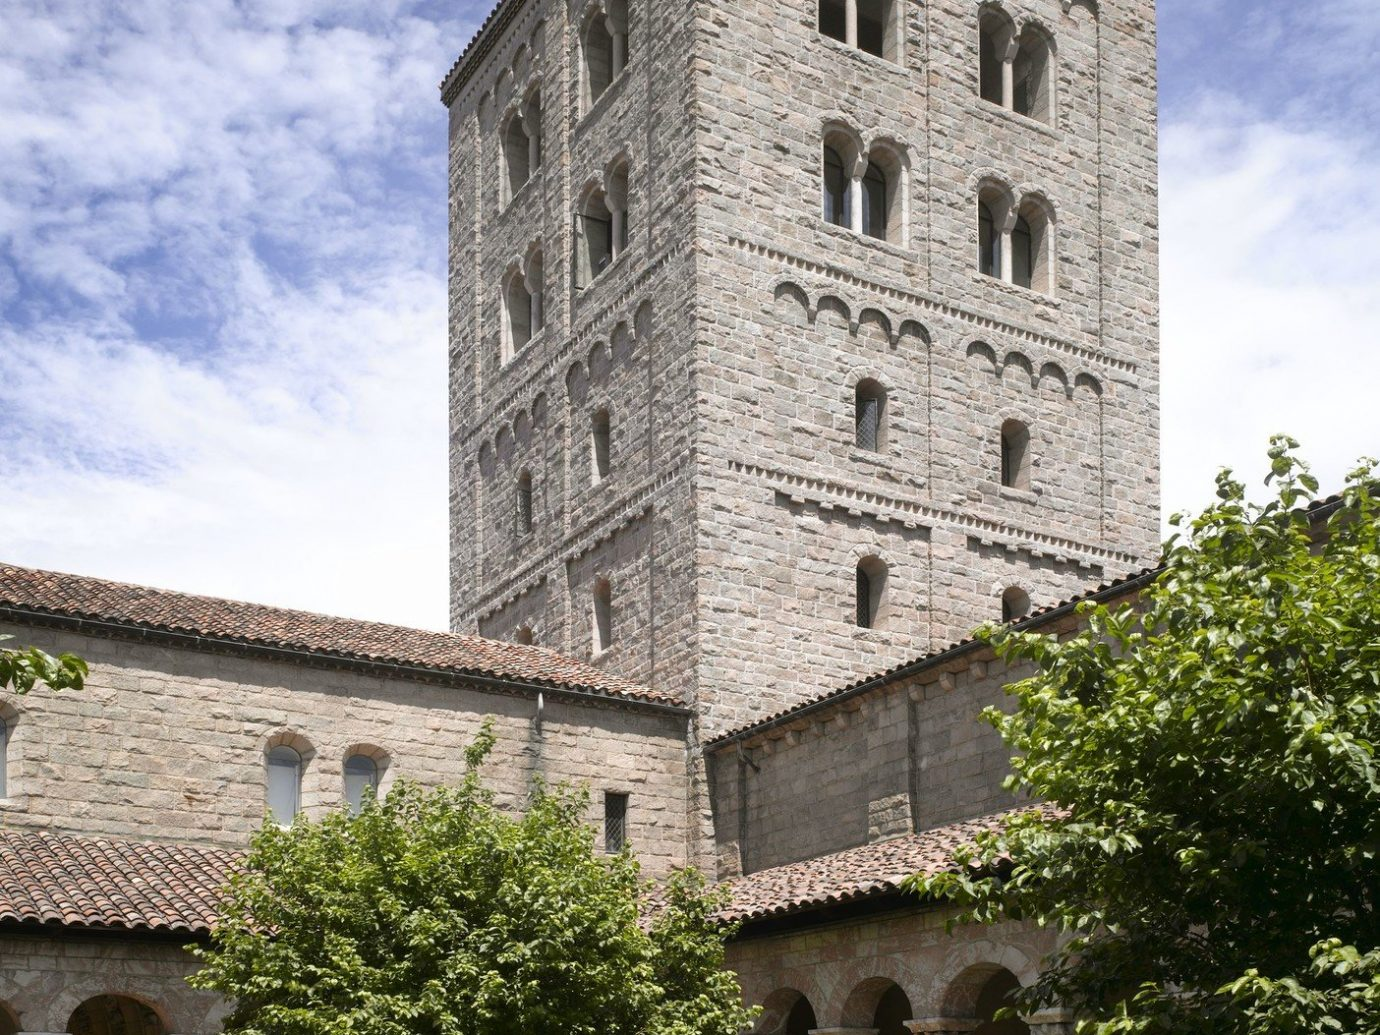 Architecture art Arts + Culture attraction Budget building calm Courtyard culture Exterior Garden Greenery Historic Museums serene tower trees outdoor sky stone landmark brick old place of worship Church bell tower estate ancient history monastery Ruins chapel fortification square